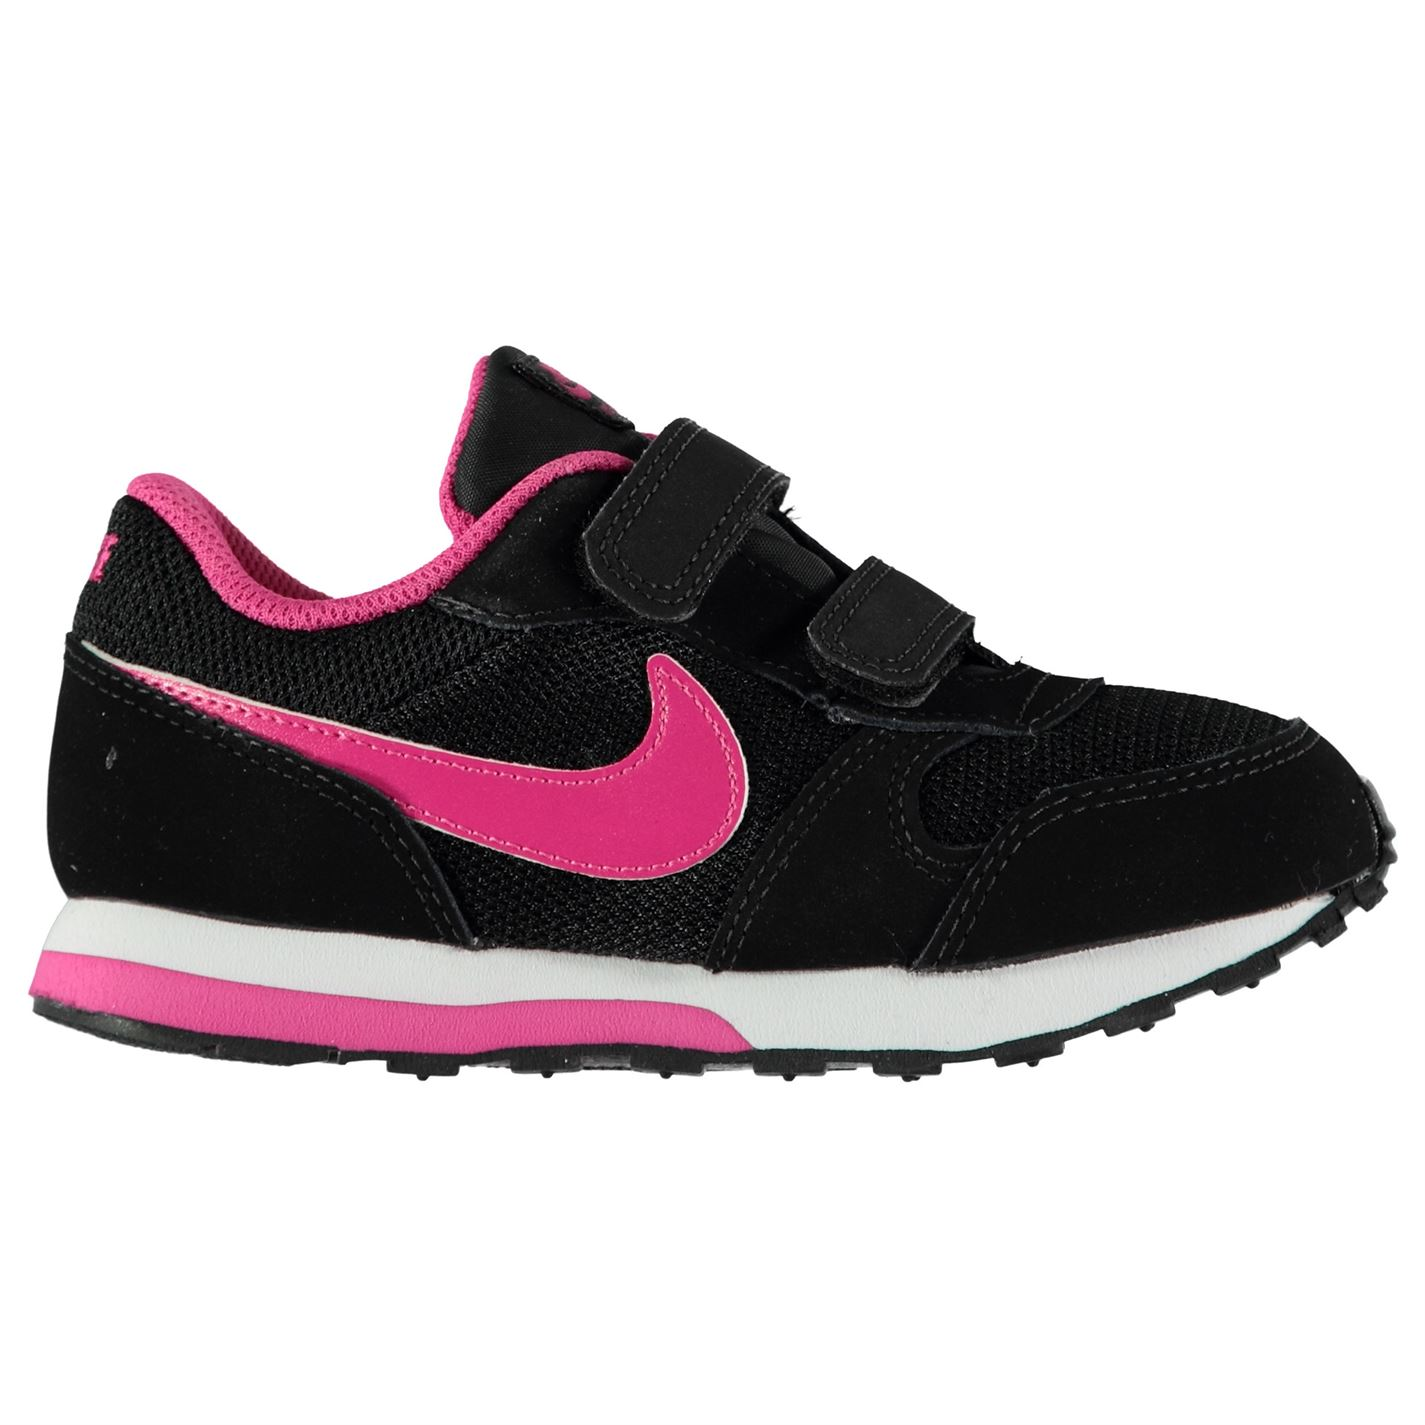 size 40 8f38a ebf78 Tenisice Nike MD Runner 2 Infant Girls Trainers Roze - Jefti